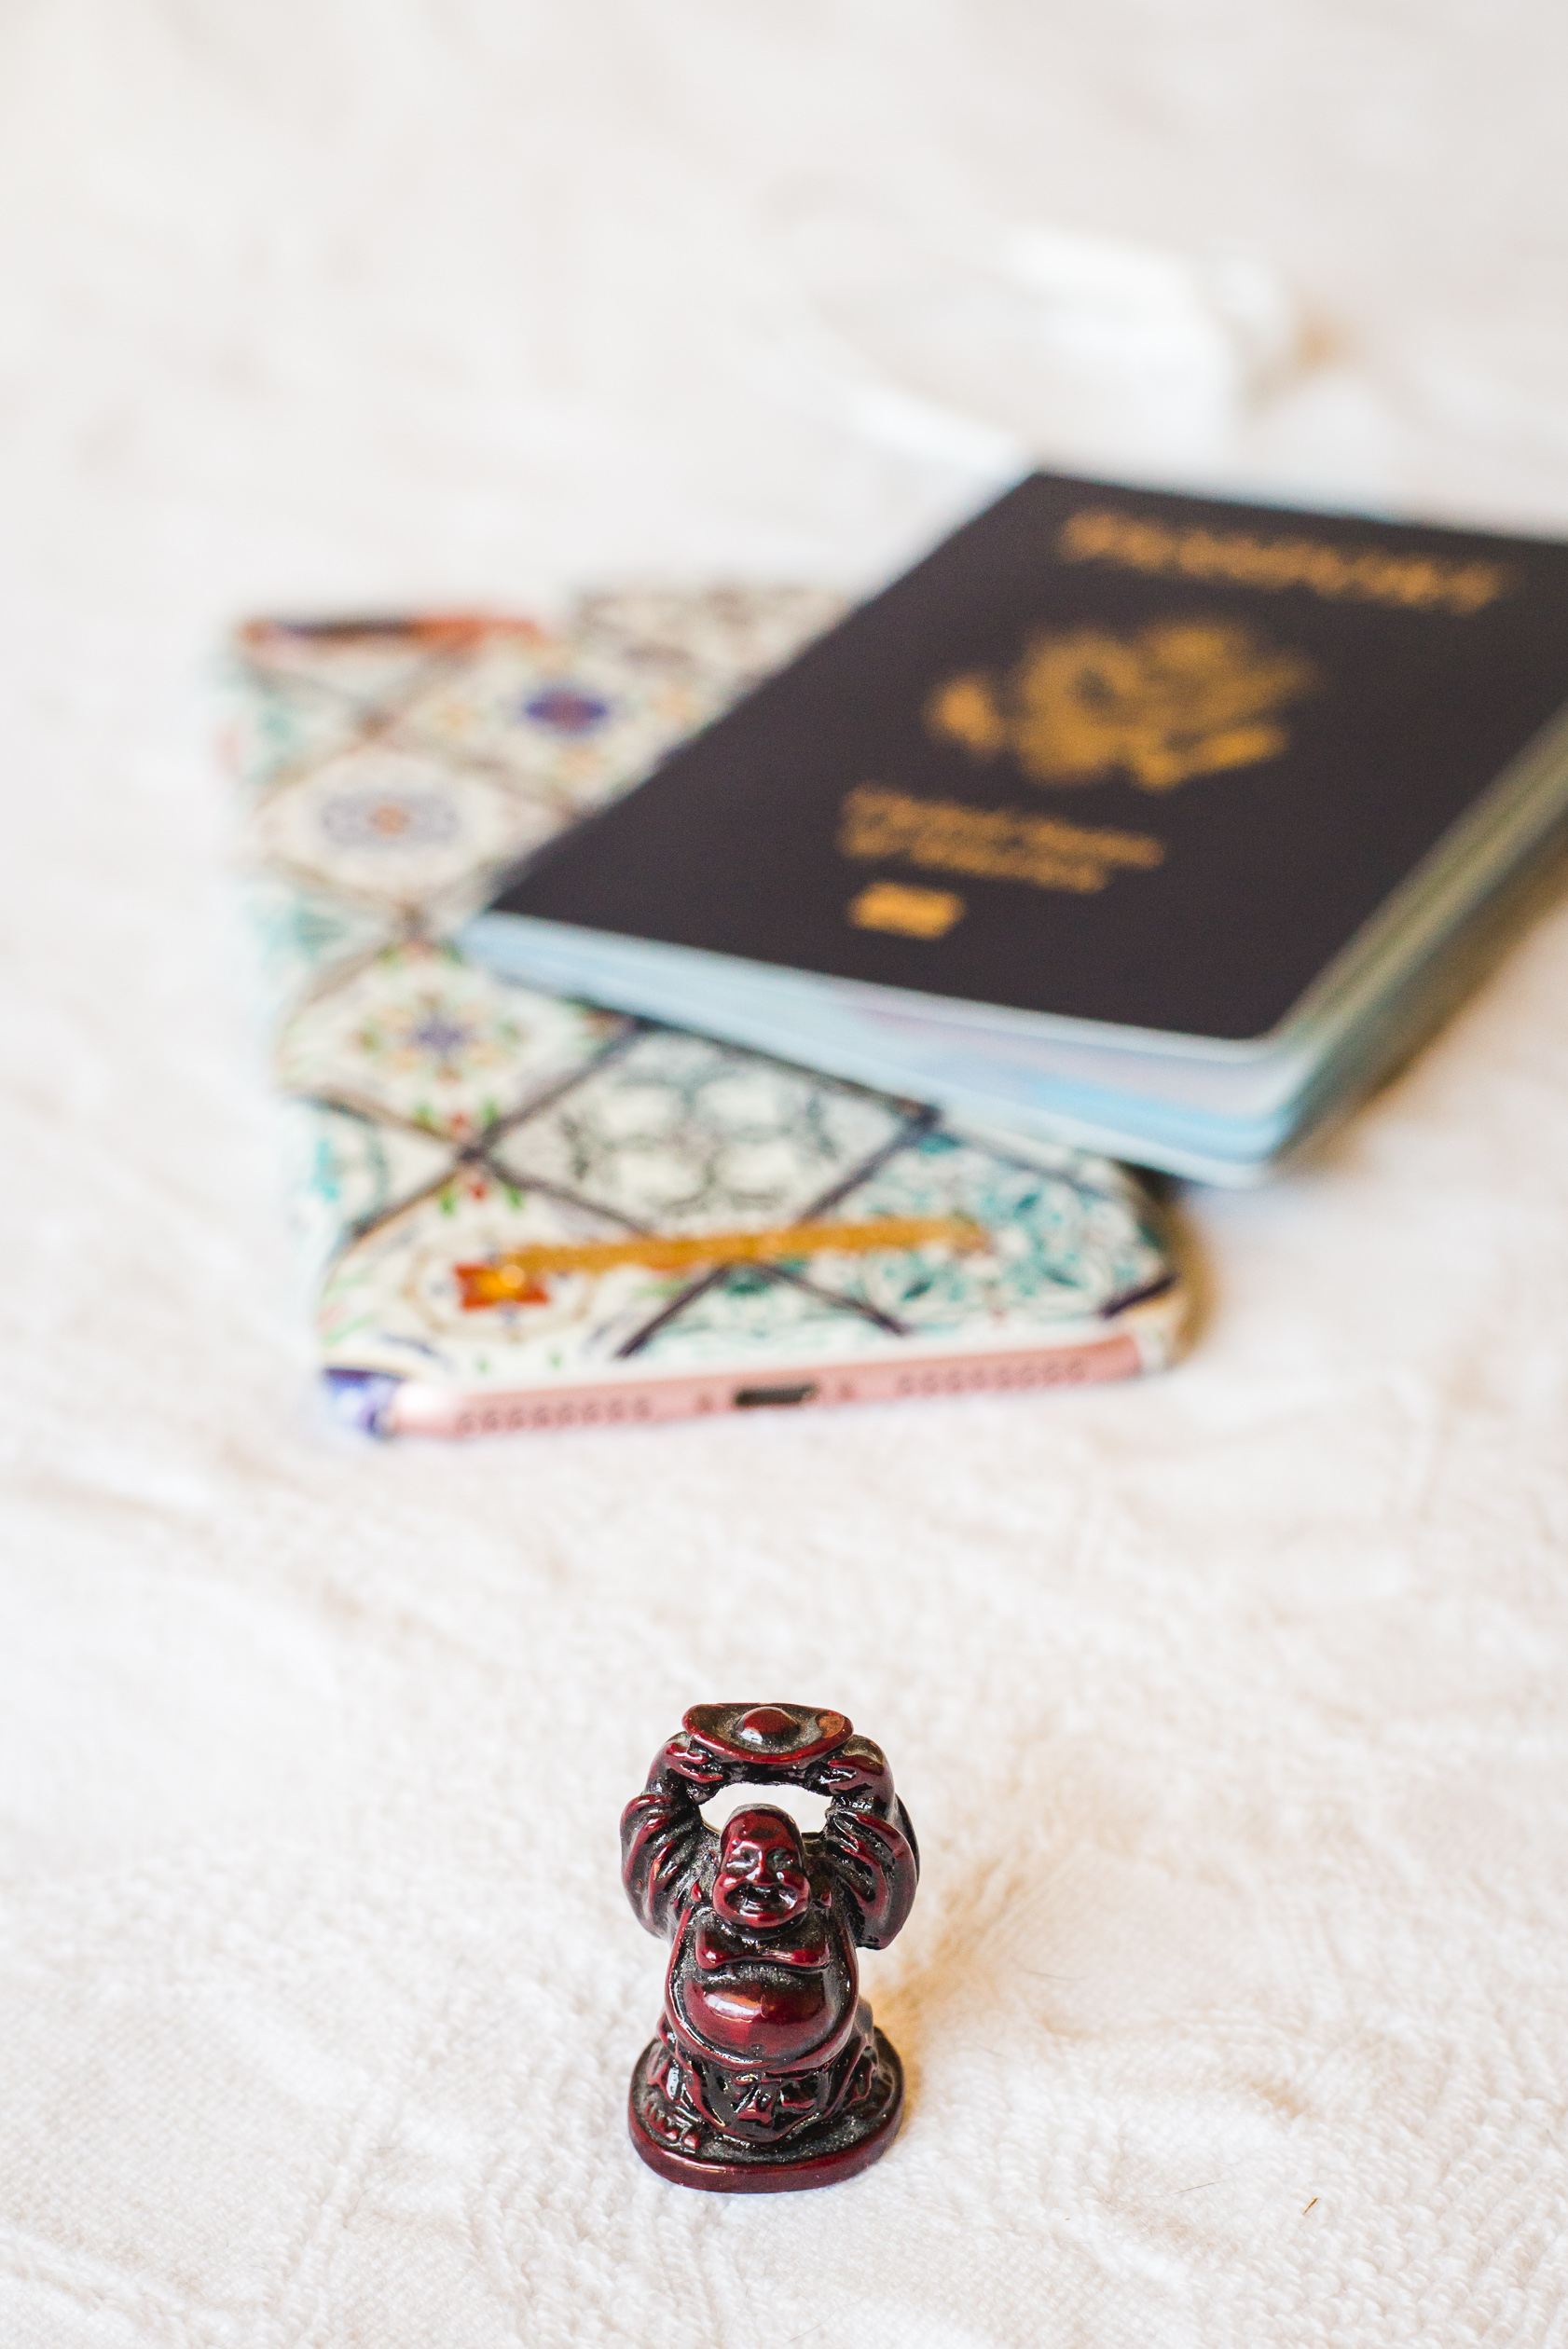 travel buddha and passport and phone | image by keeping composure photography